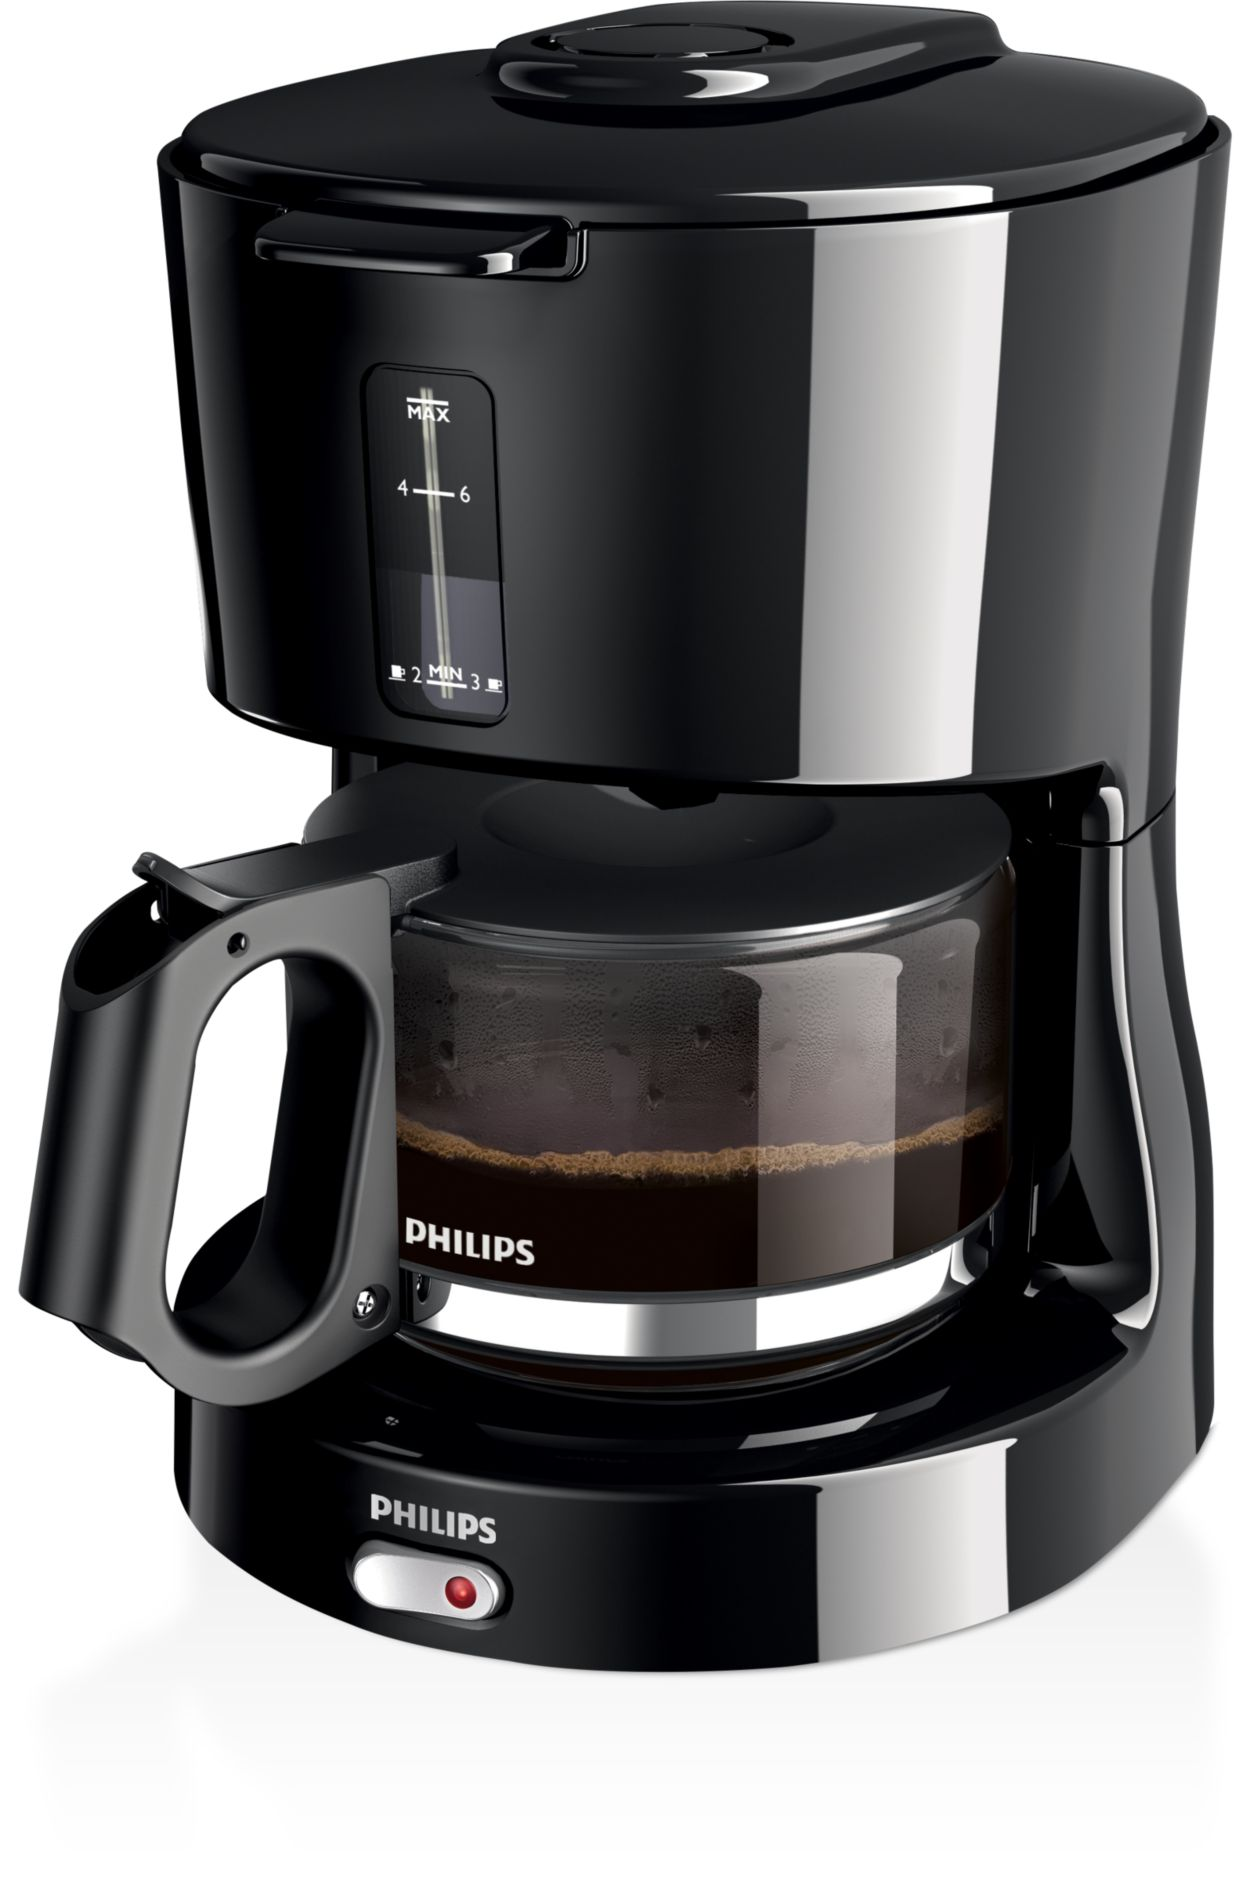 Philips Daily Coffee Maker Hd : Daily Collection Coffee maker HD7450/20 Philips